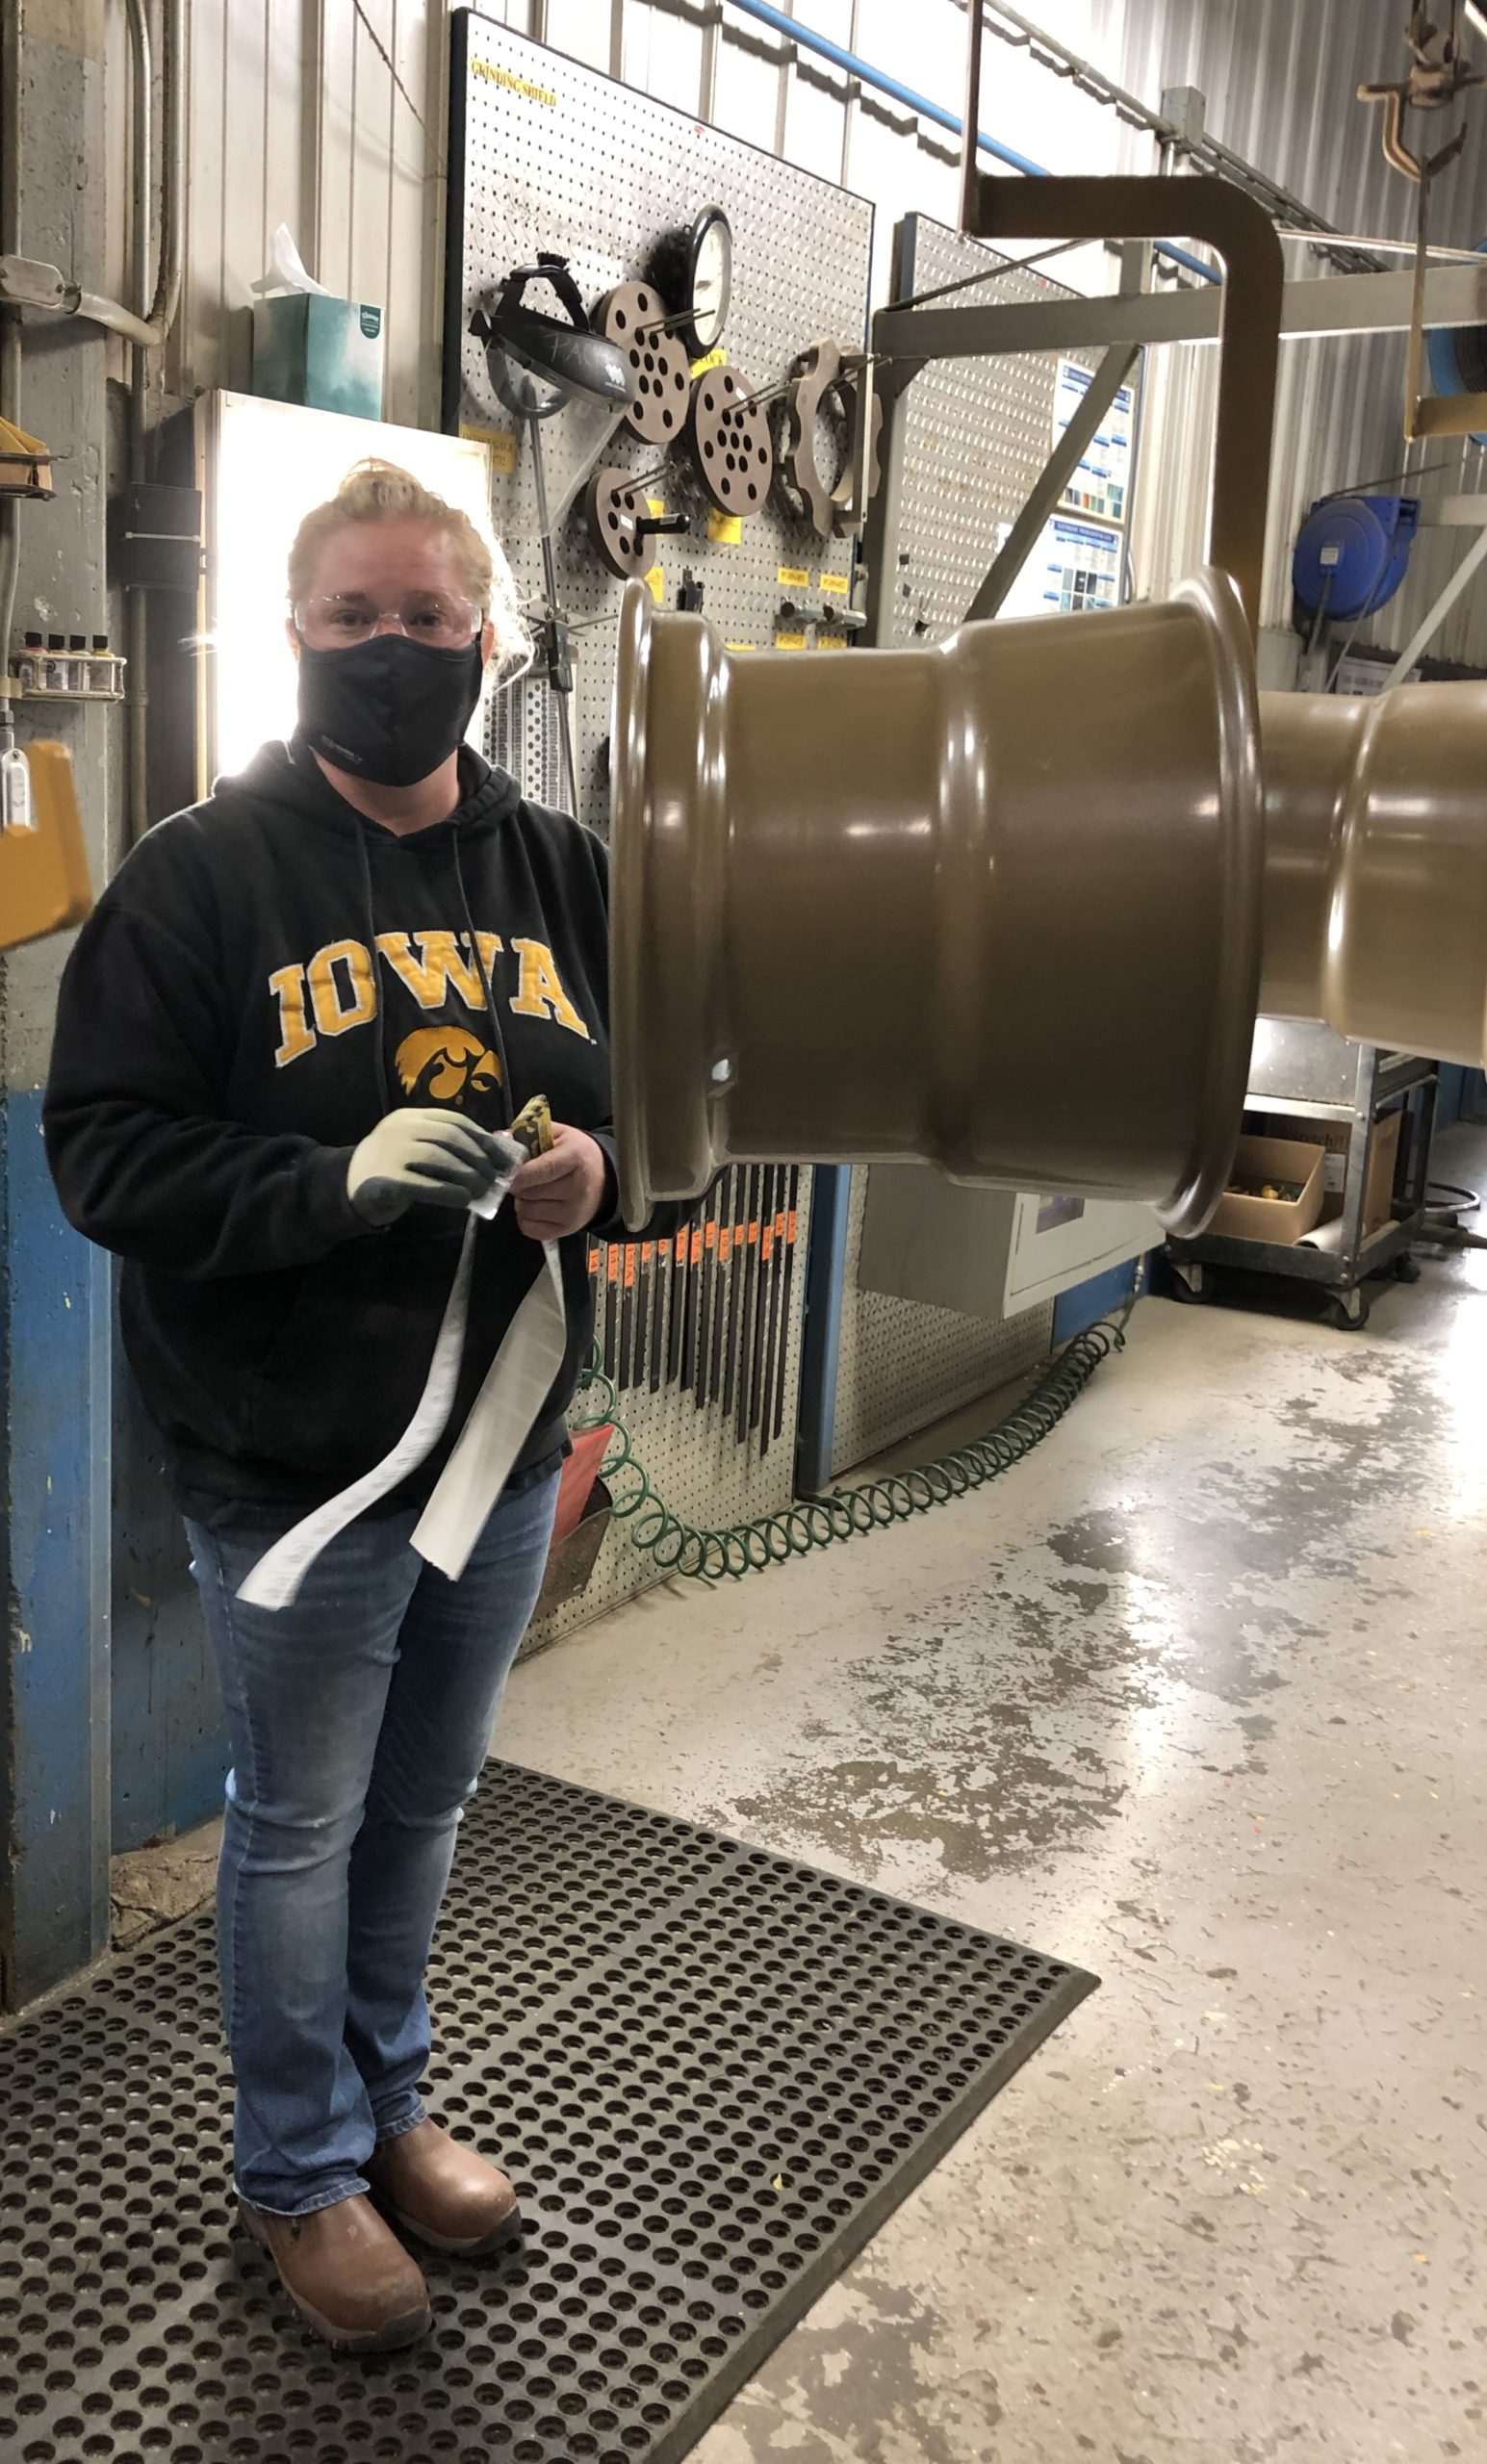 Amanda Hersleff of GKN Armstrong Wheels in the workplace.